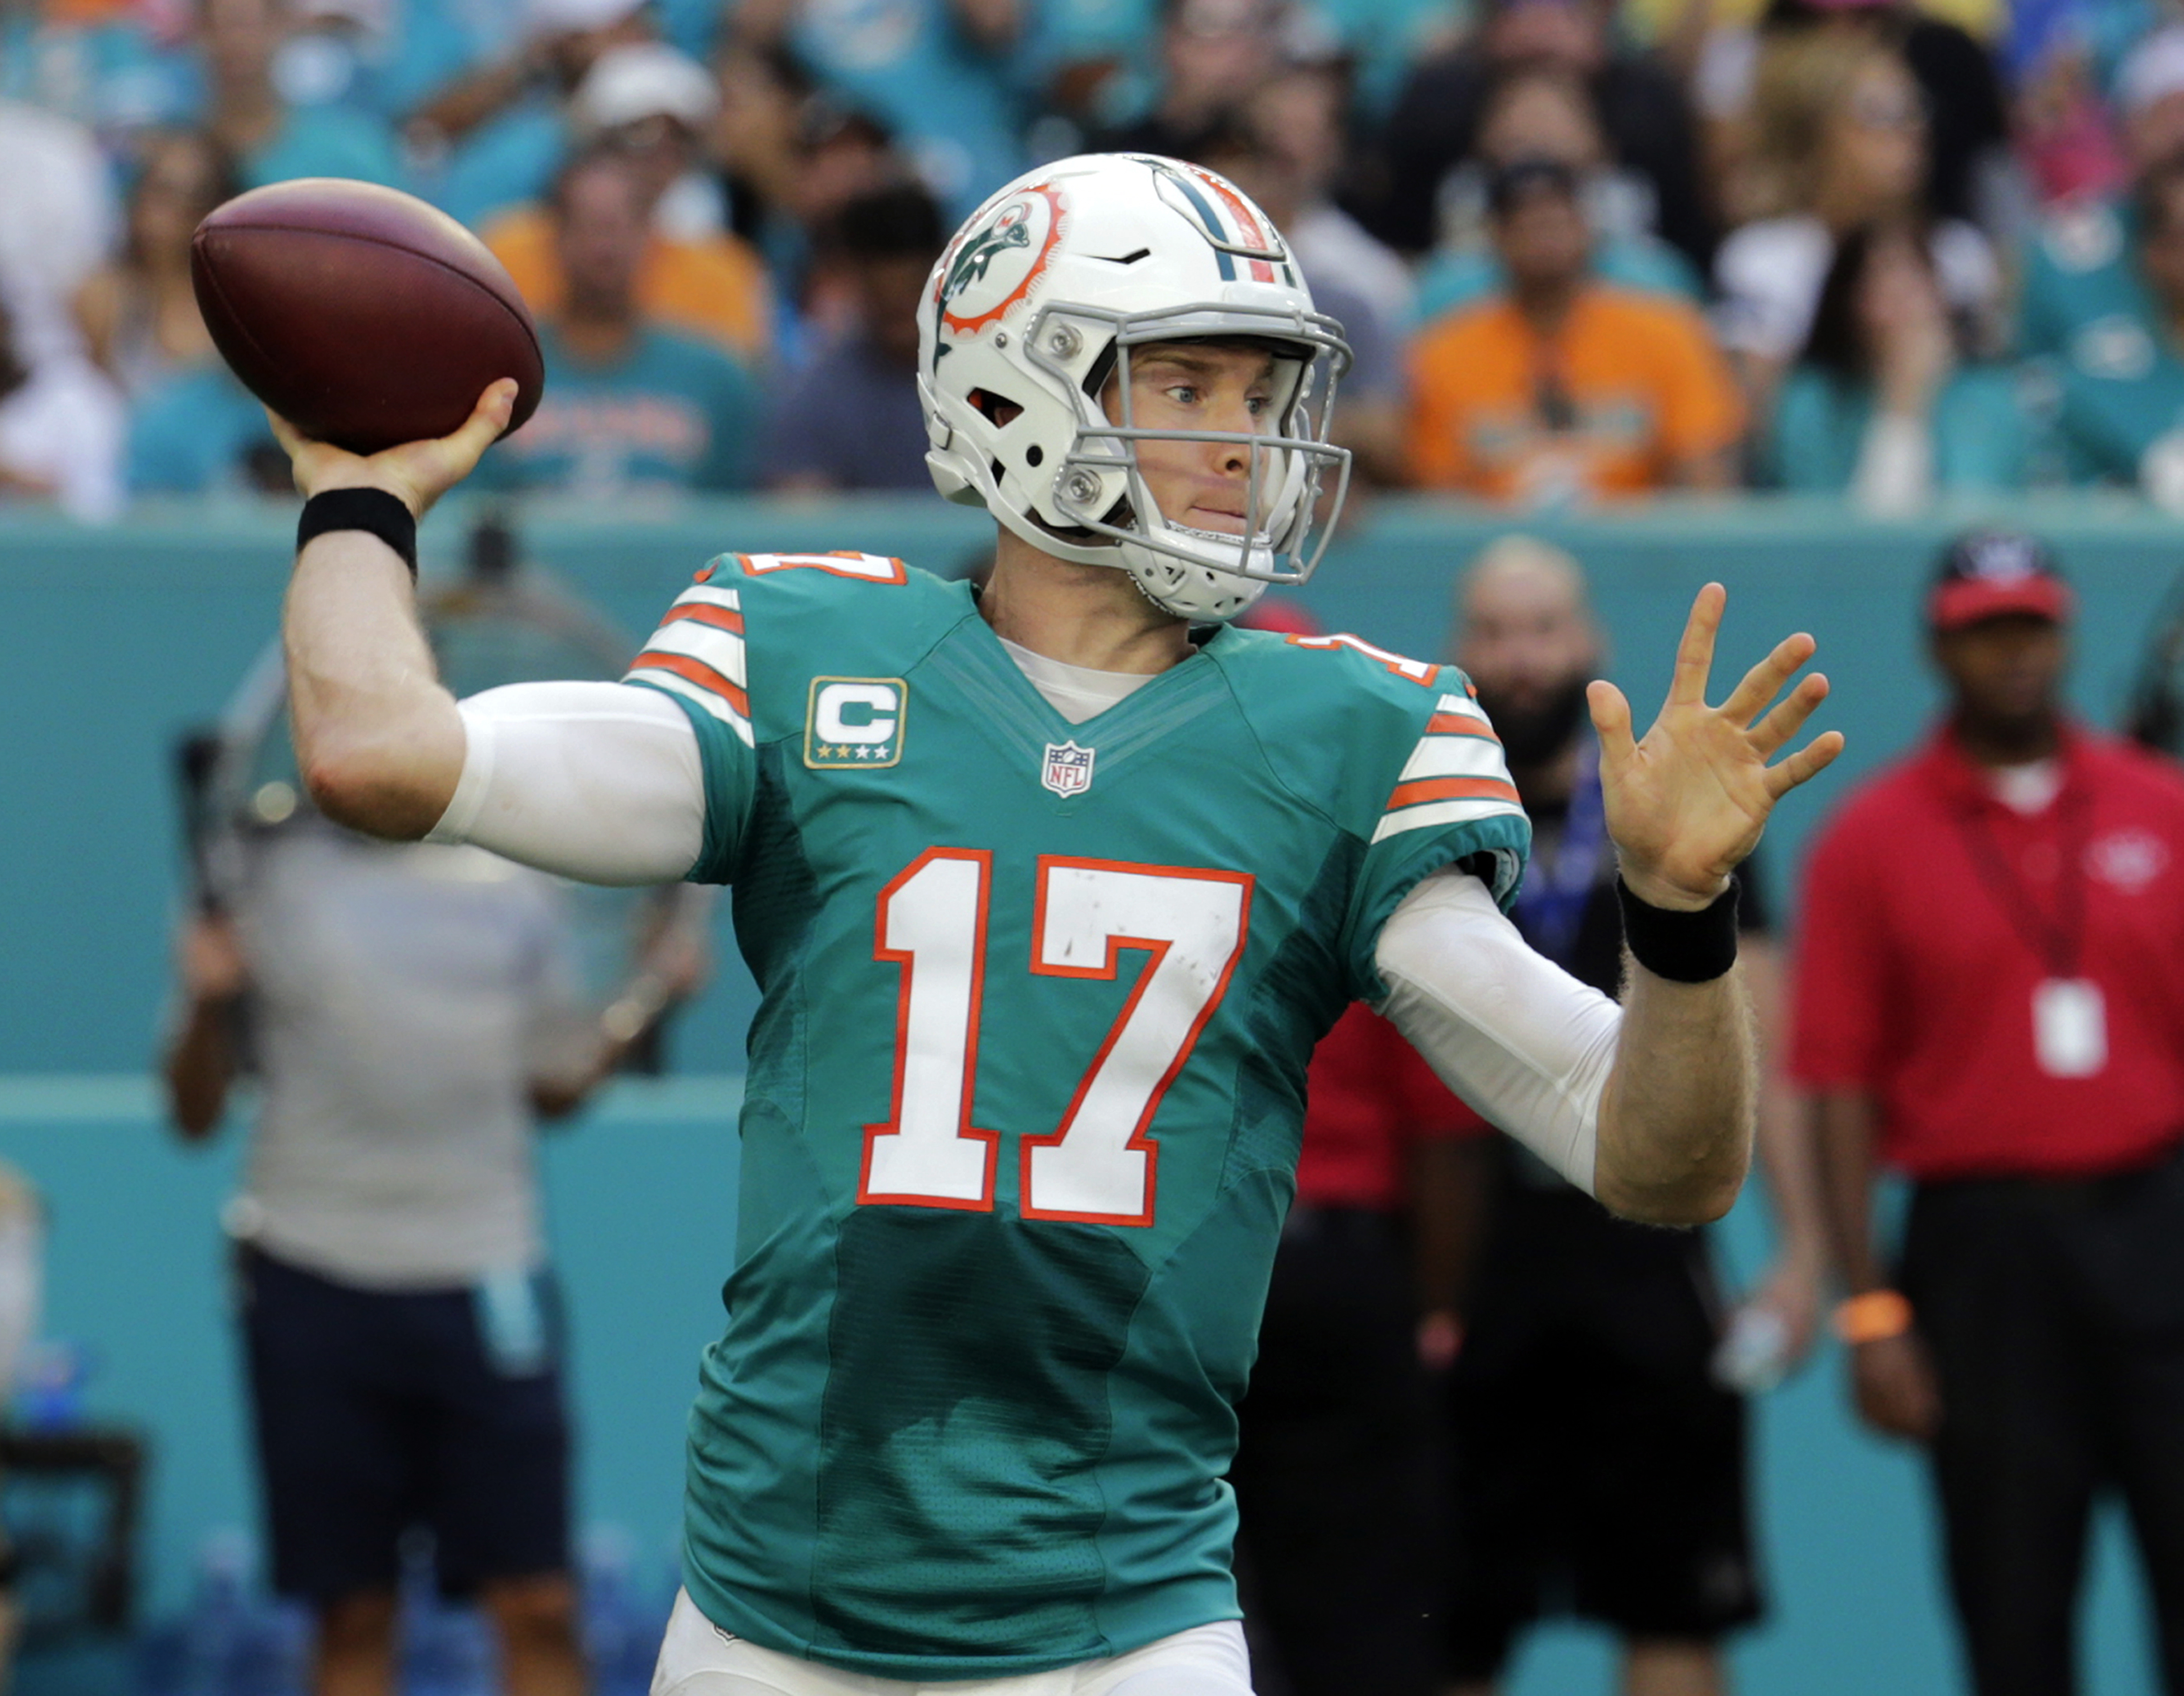 FILE -  In this Sunday, Nov. 27, 2016 file photo, Miami Dolphins quarterback Ryan Tannehill (17) looks to pass, during the first half of an NFL football game against the San Francisco 49ers in Miami Gardens, Fla. December has historically been Ryan Tanneh